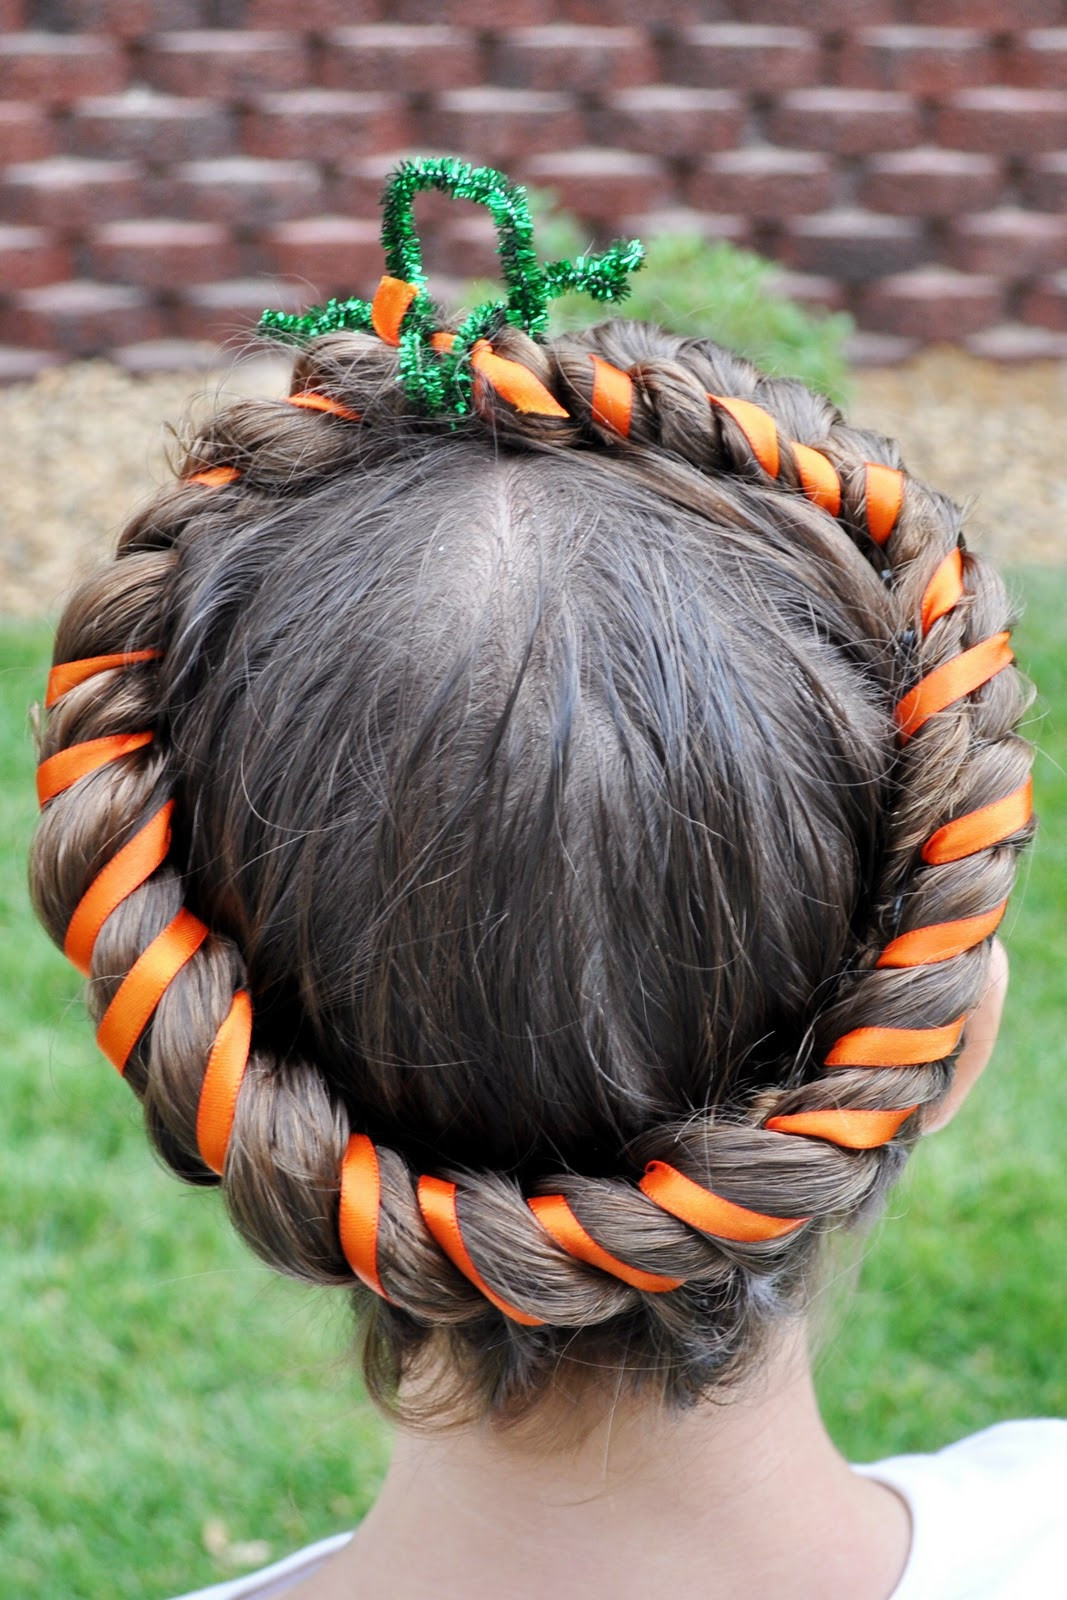 Best ideas about Halloween Hairstyles . Save or Pin Princess Piggies Halloween Hairstyles Recap Now.